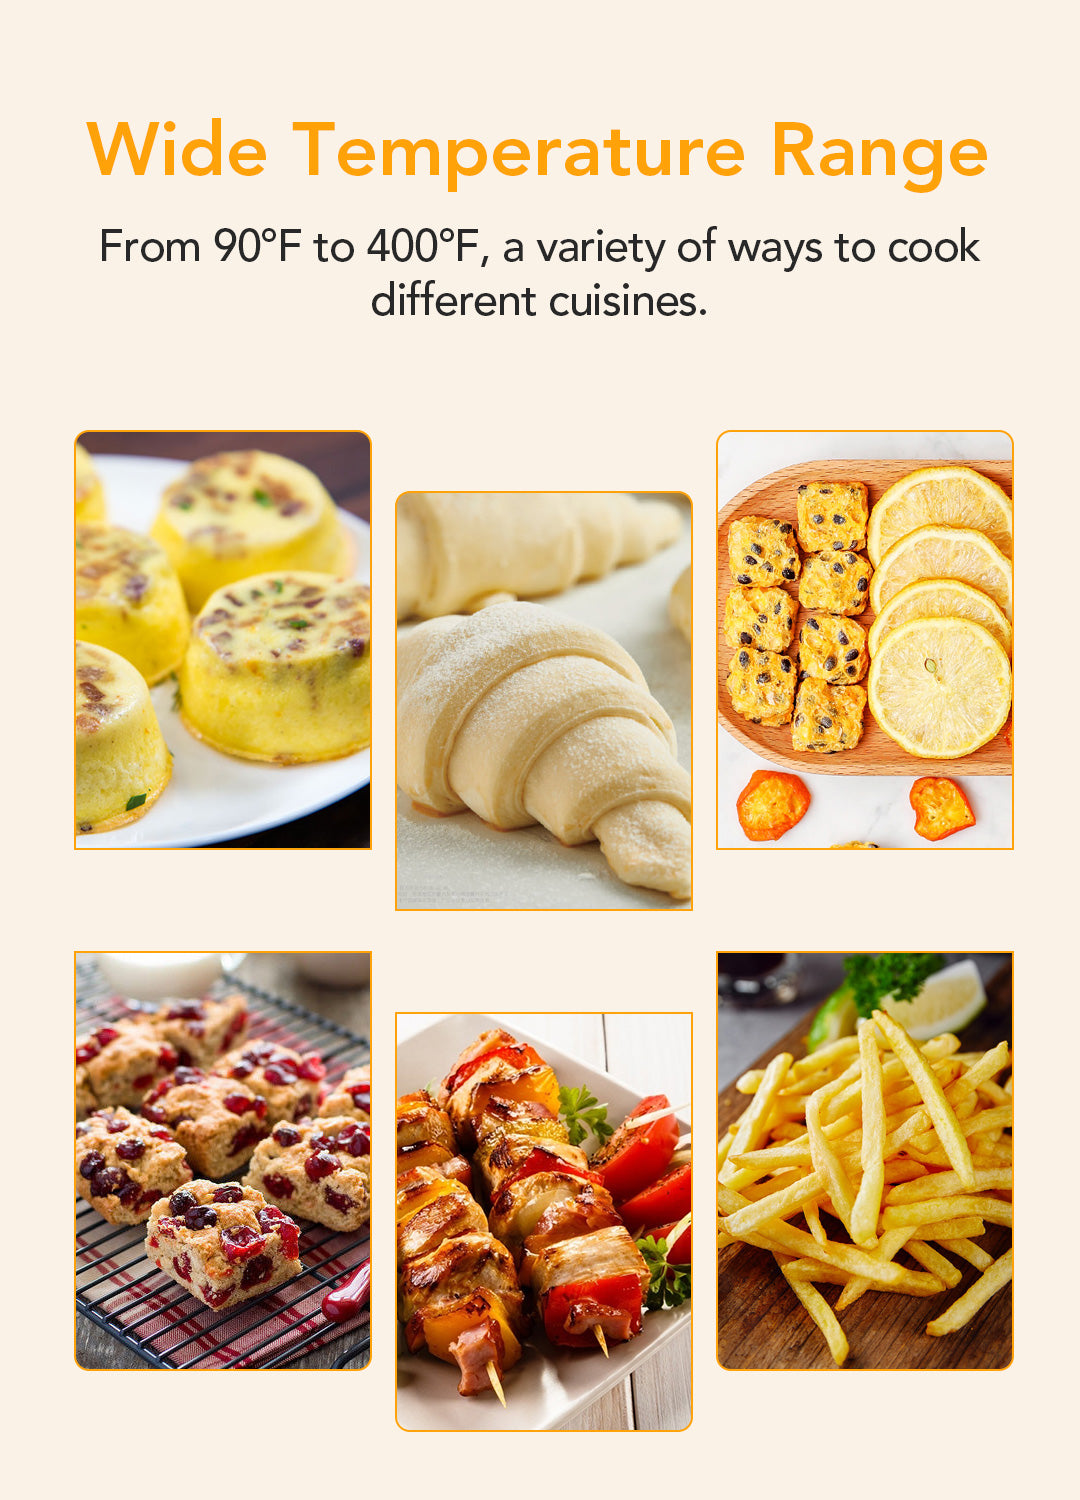 Acekool Air Fryer FT1 ranges from 90°F to 400°F